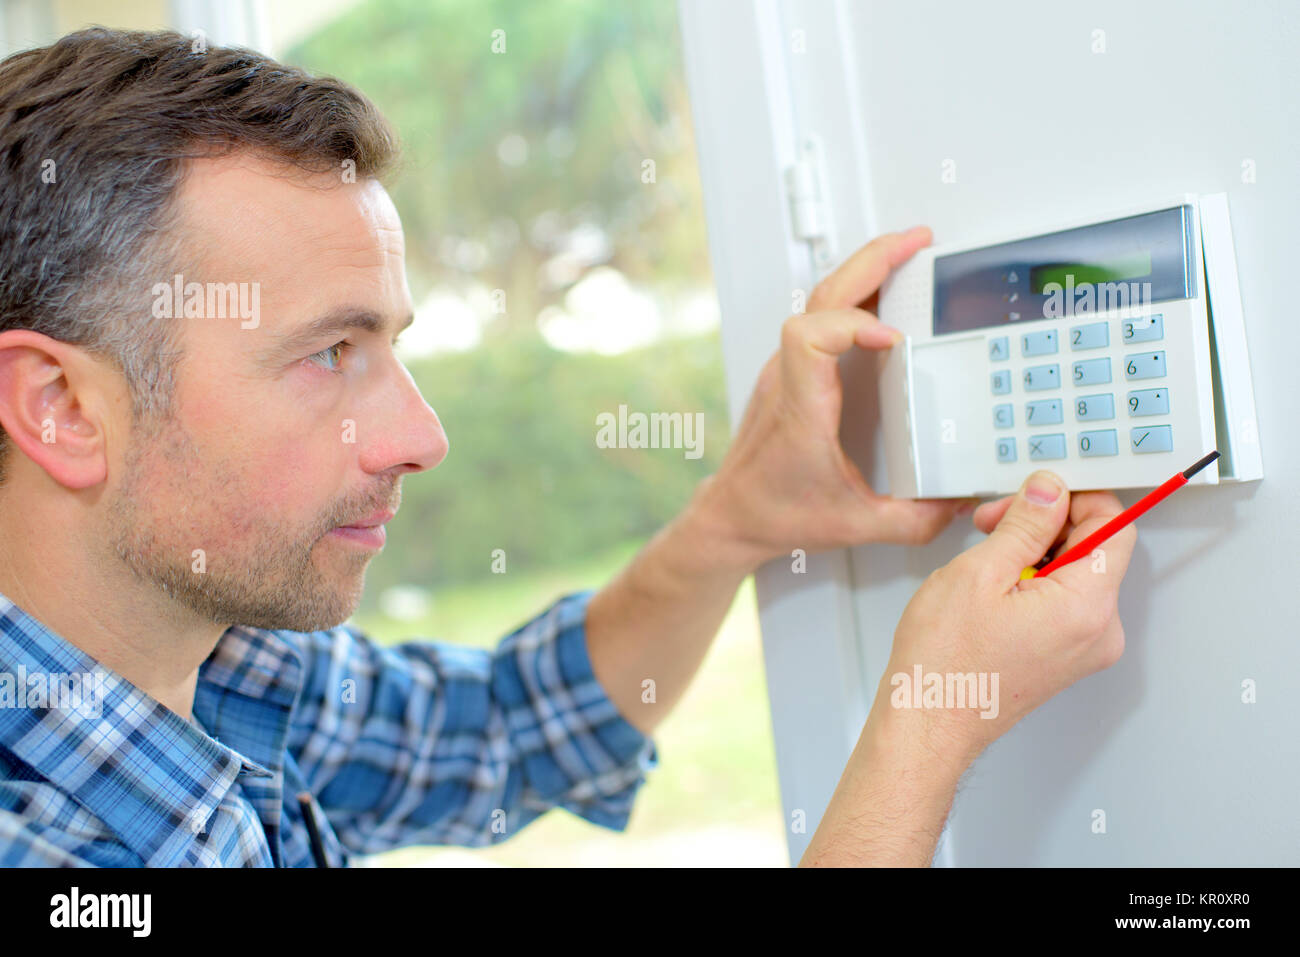 Electrician fitting an intrusion alarm - Stock Image